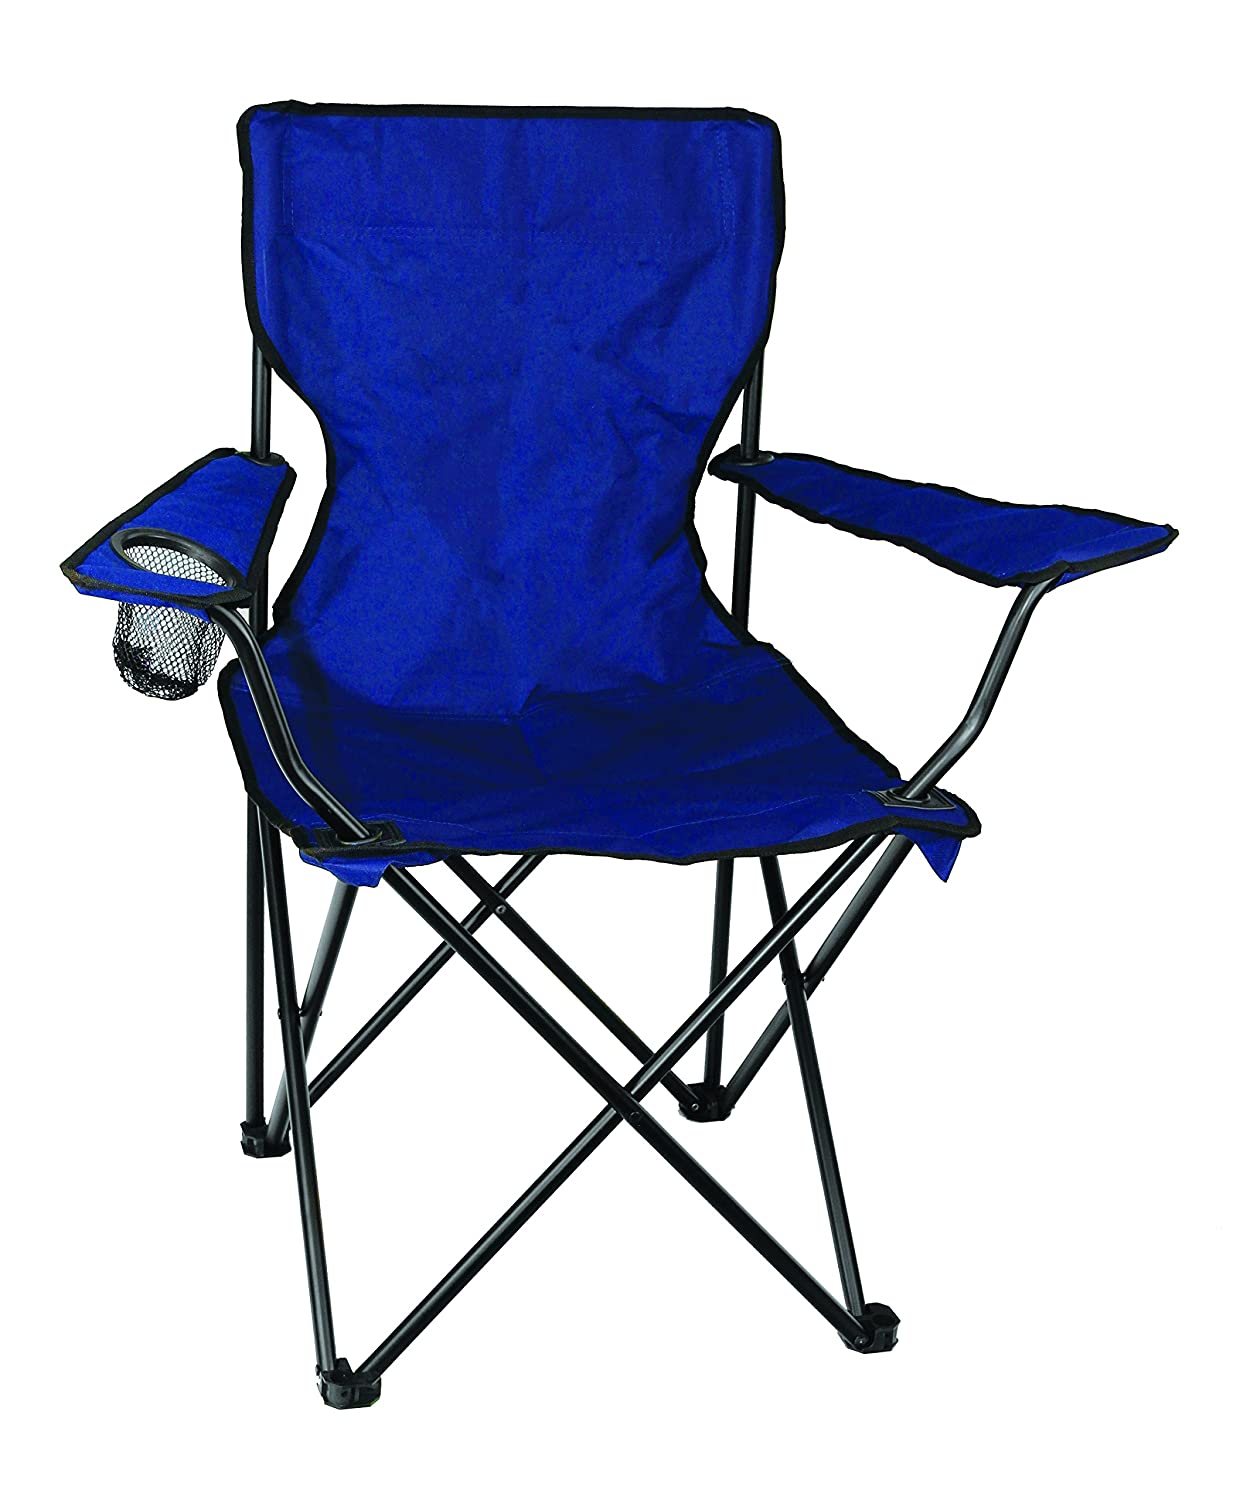 amazoncom texsport bazaar folding camp picnic outdoor chair with drink holder camping chairs sports u0026 outdoors - Folding Outdoor Chairs